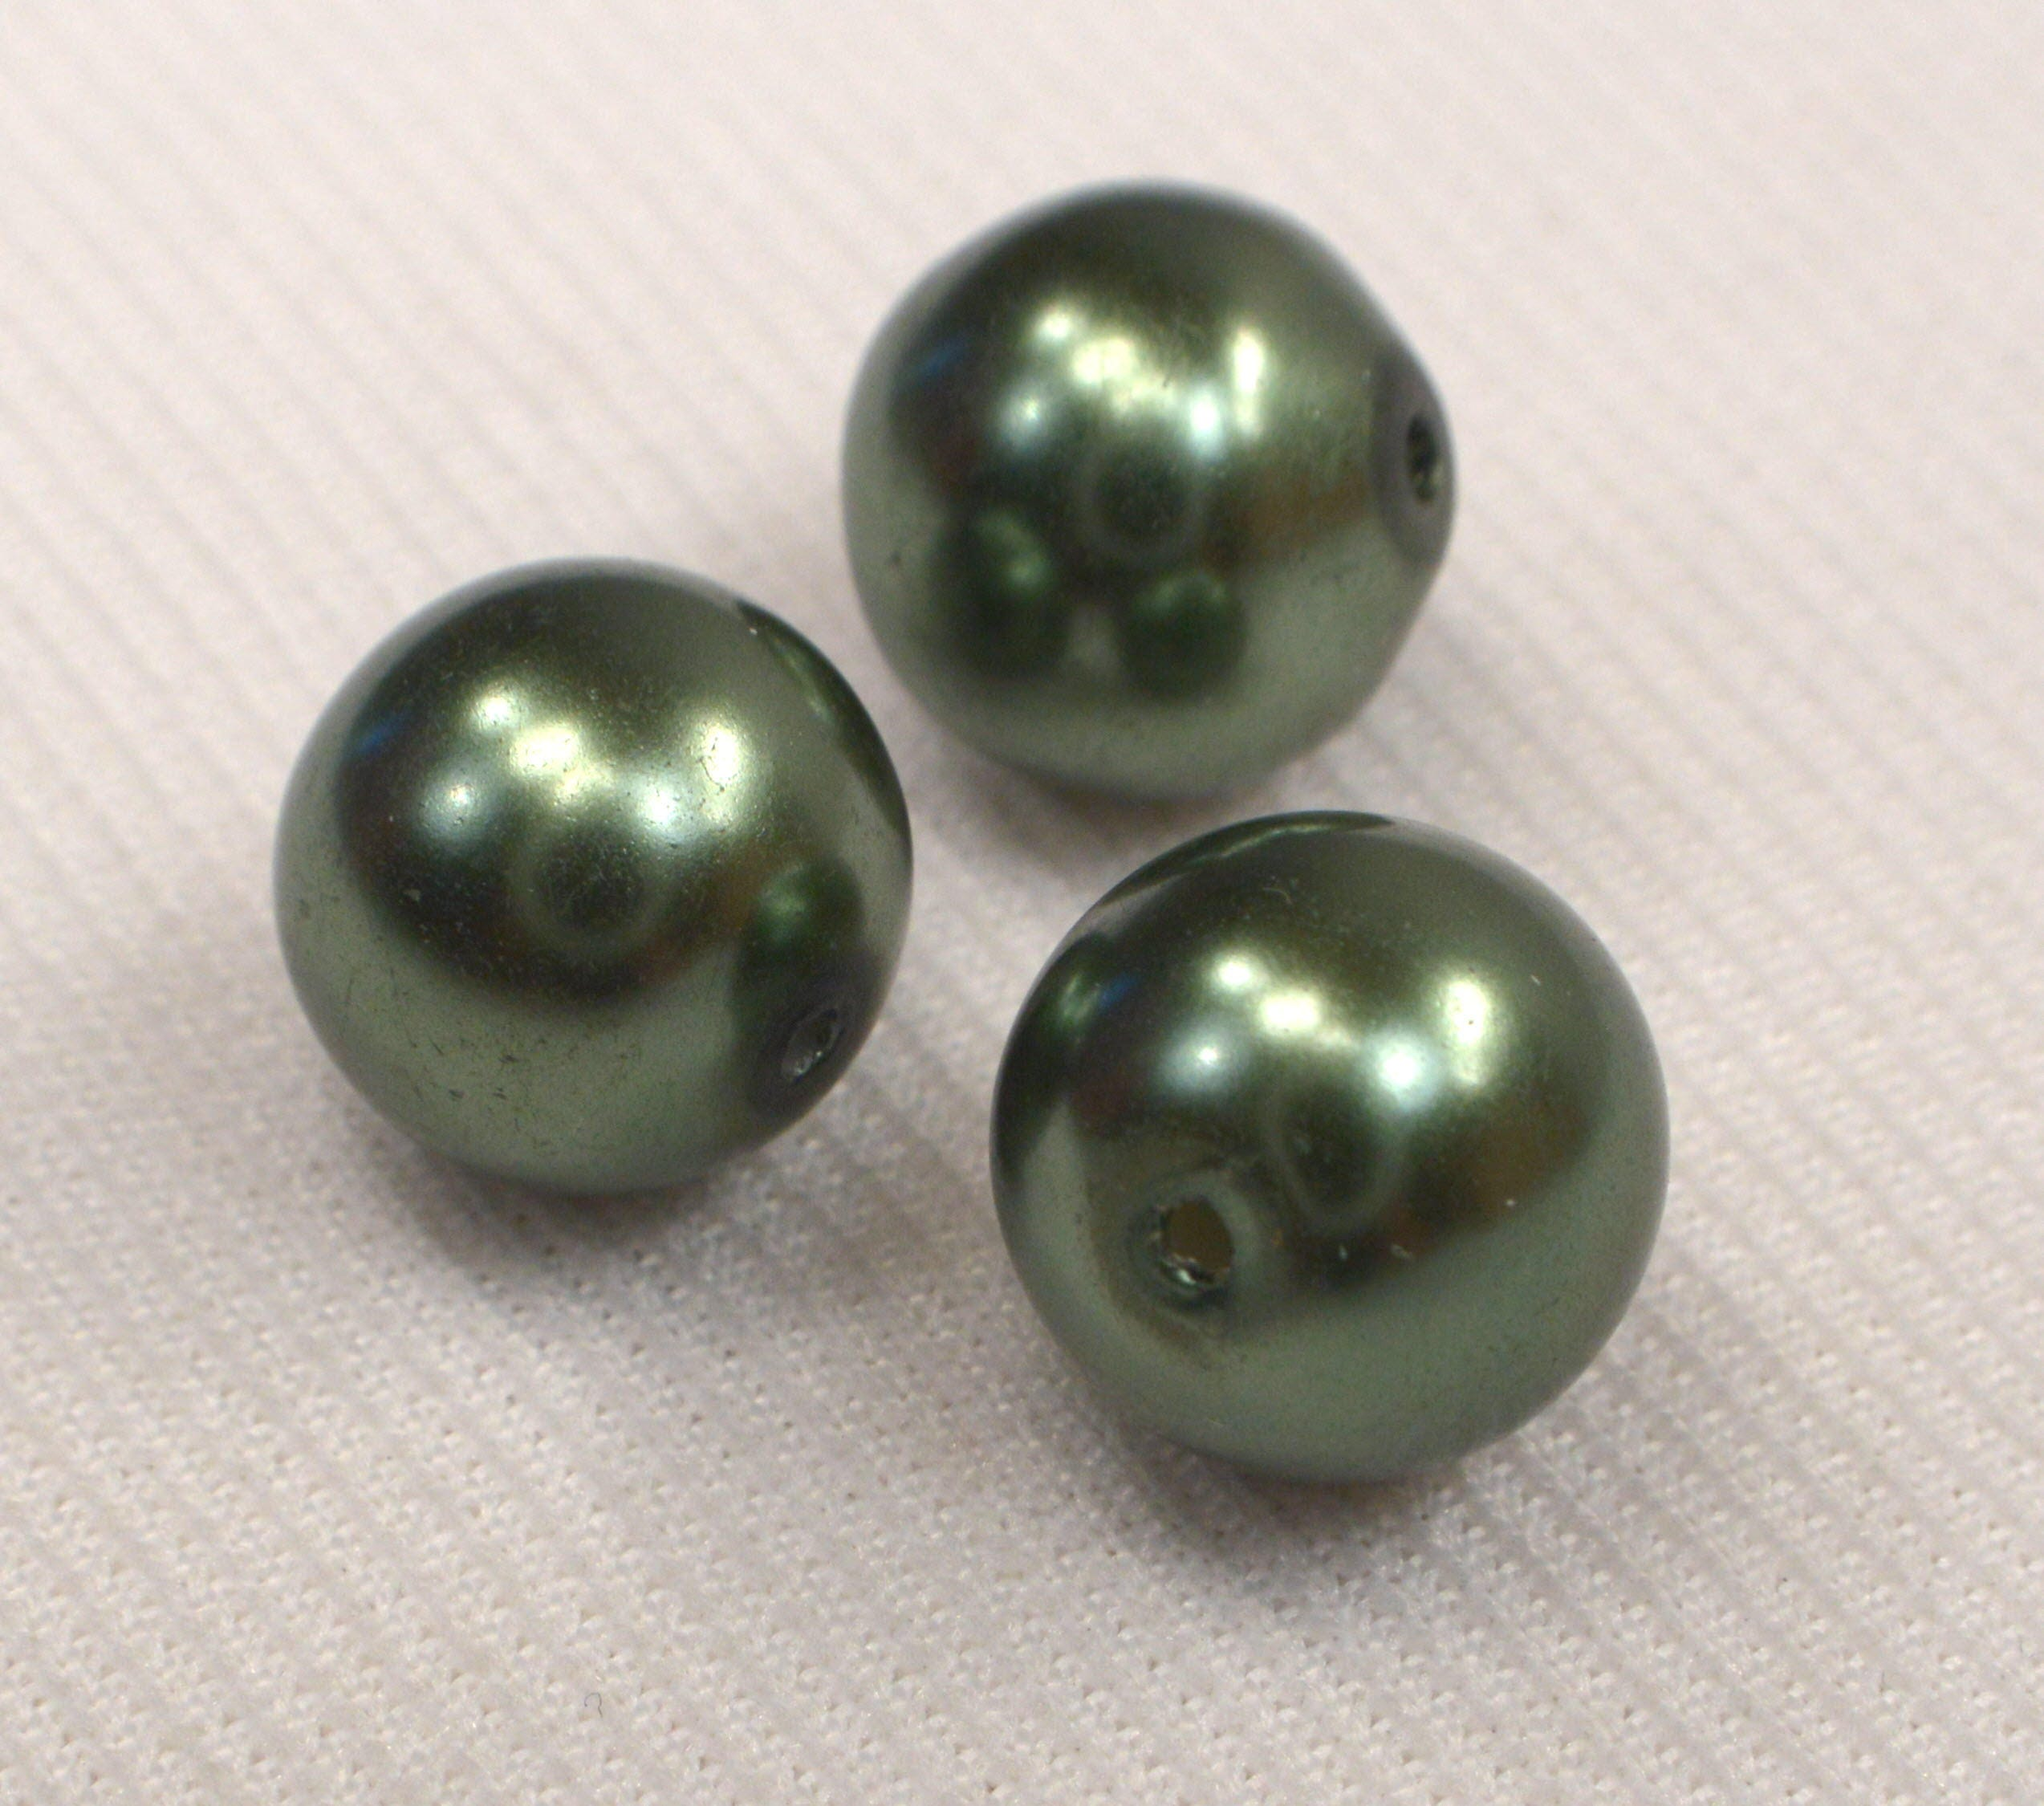 qualitybeadmart pearl snqv genuine green freshwater il listing sold by button olive pearls fullxfull